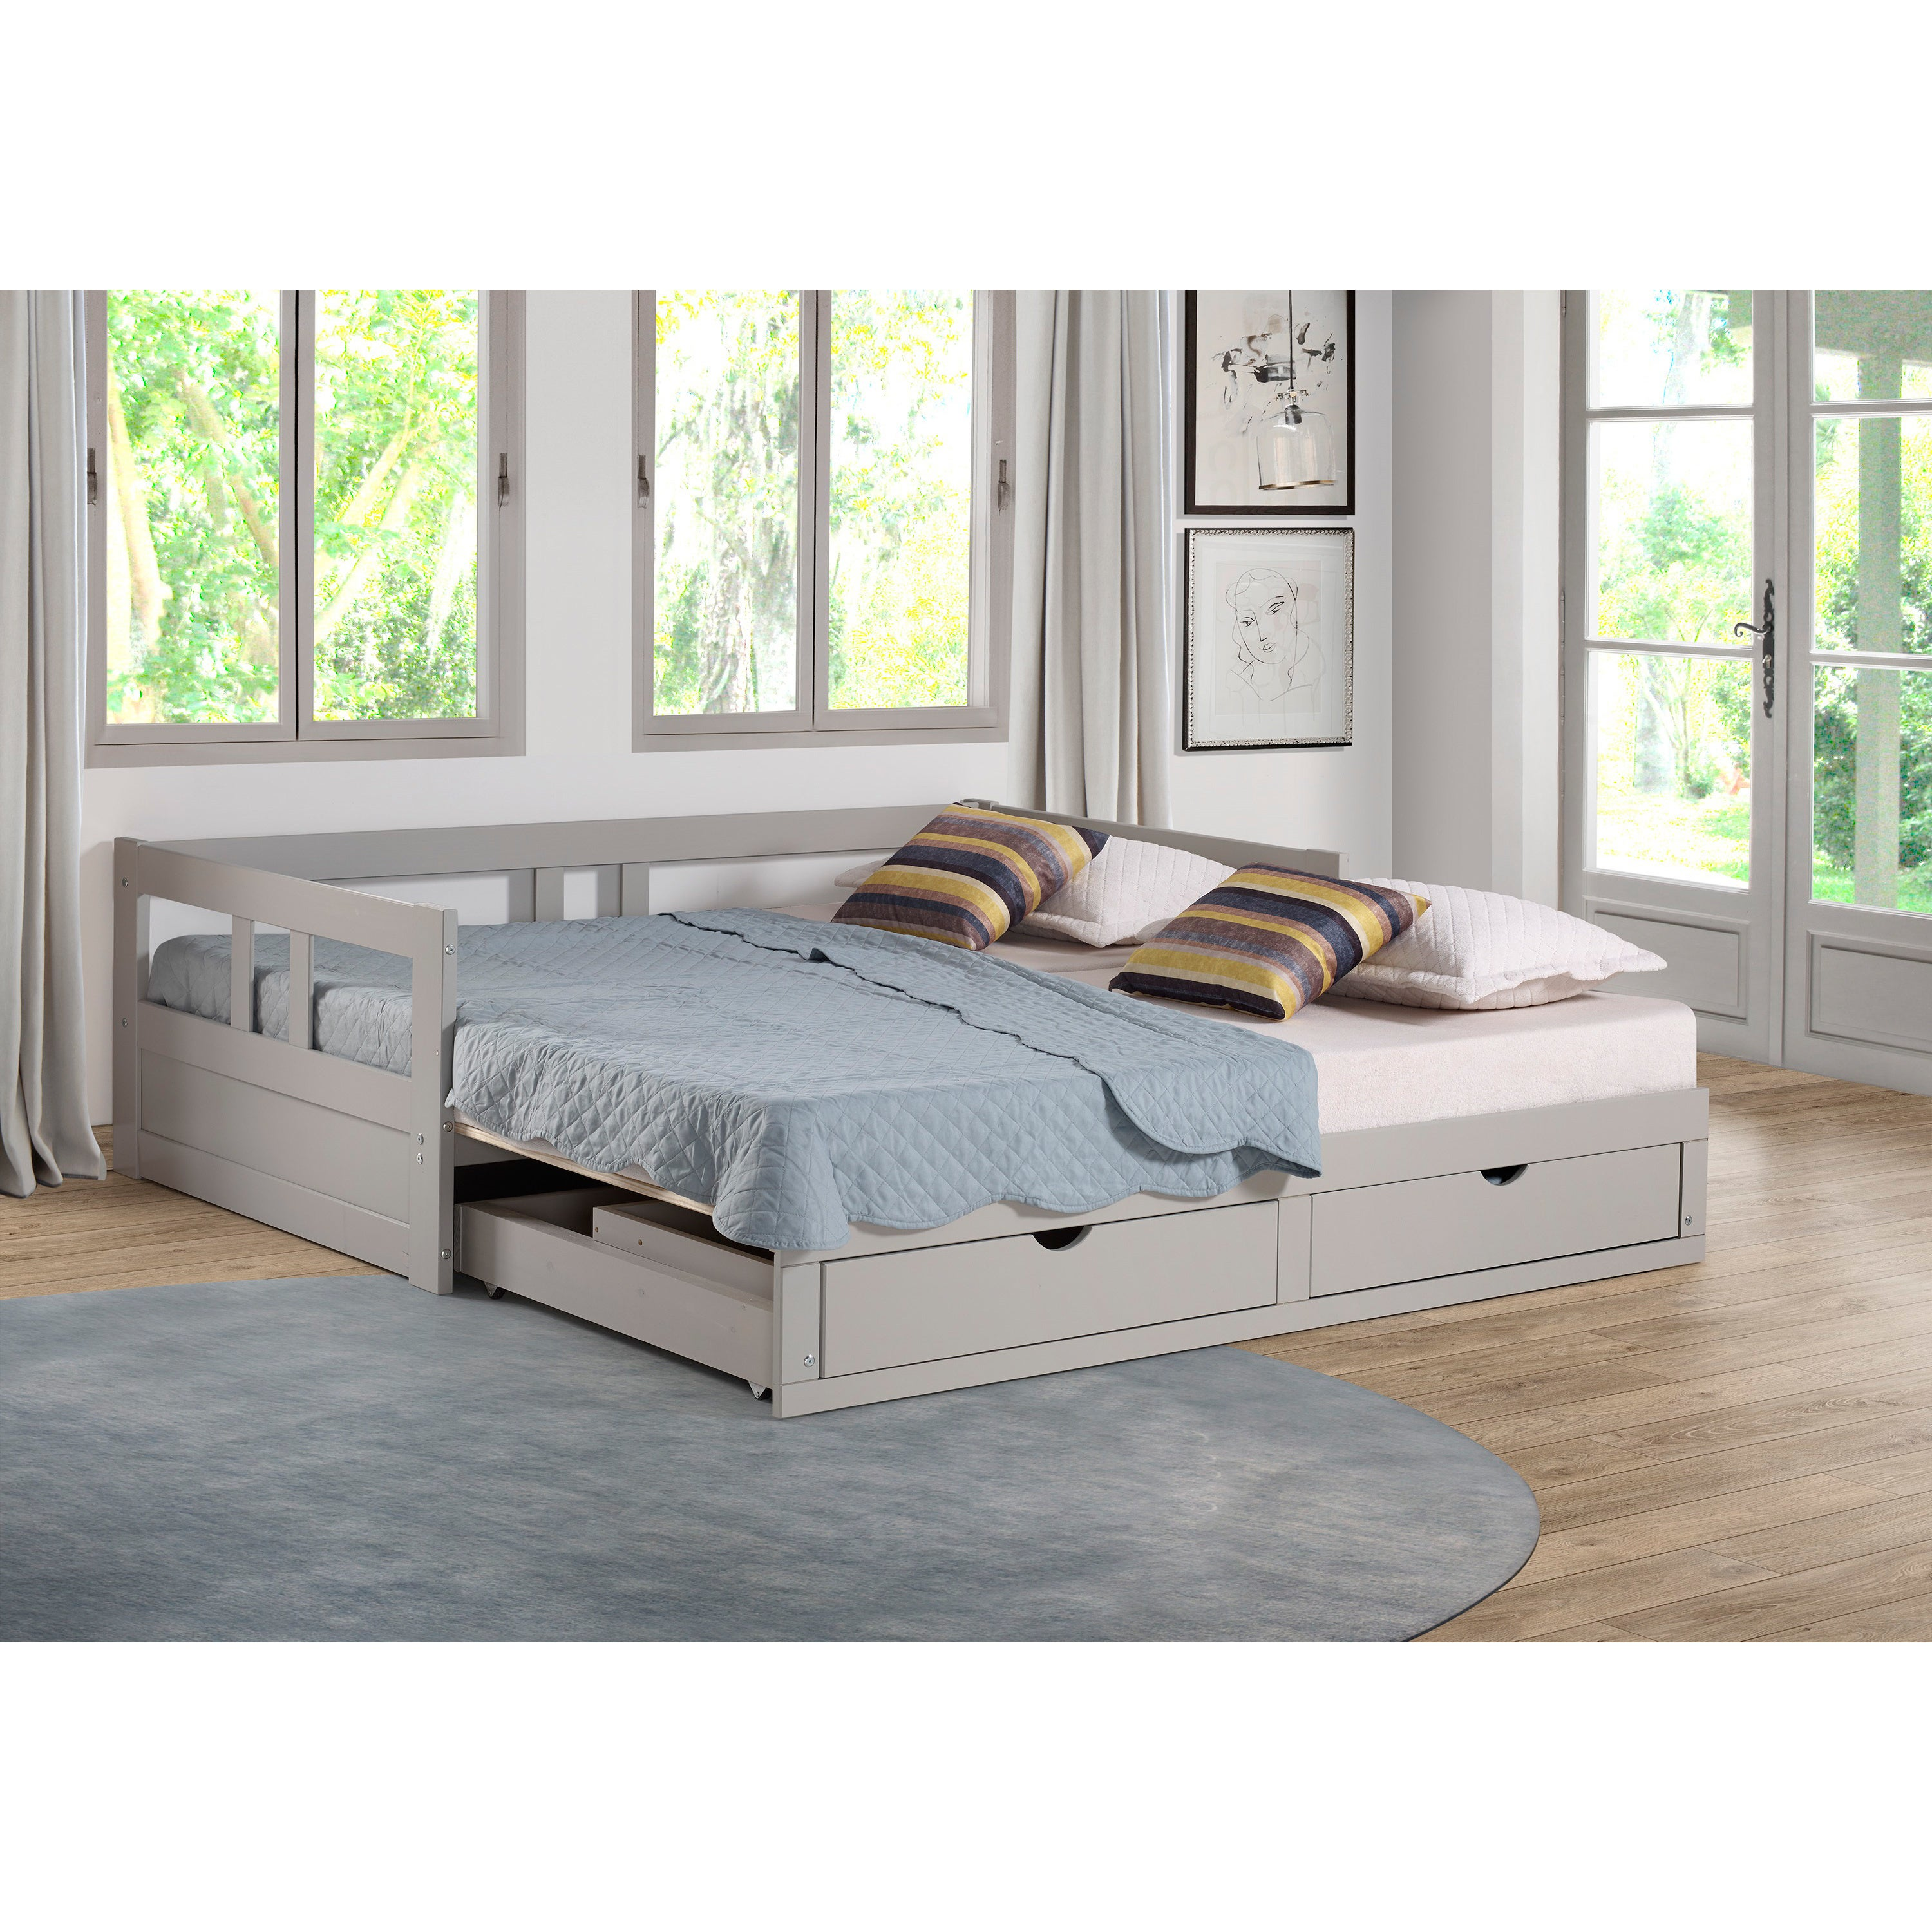 Shop Melody Expandable Twin To King Trundle Daybed With Storage